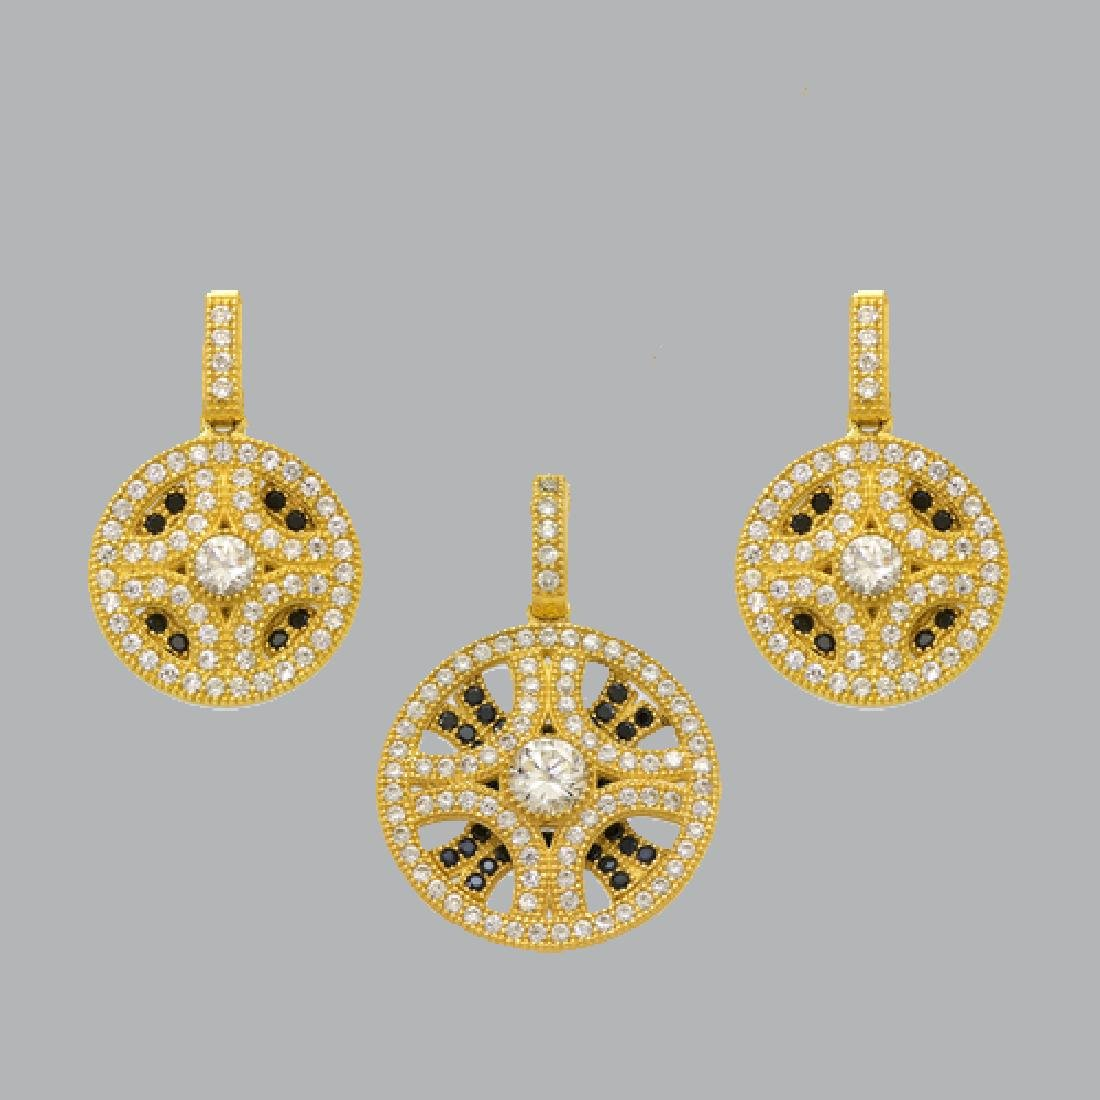 NEW 14K YELLOW GOLD DISC EARRING PENDANT SET